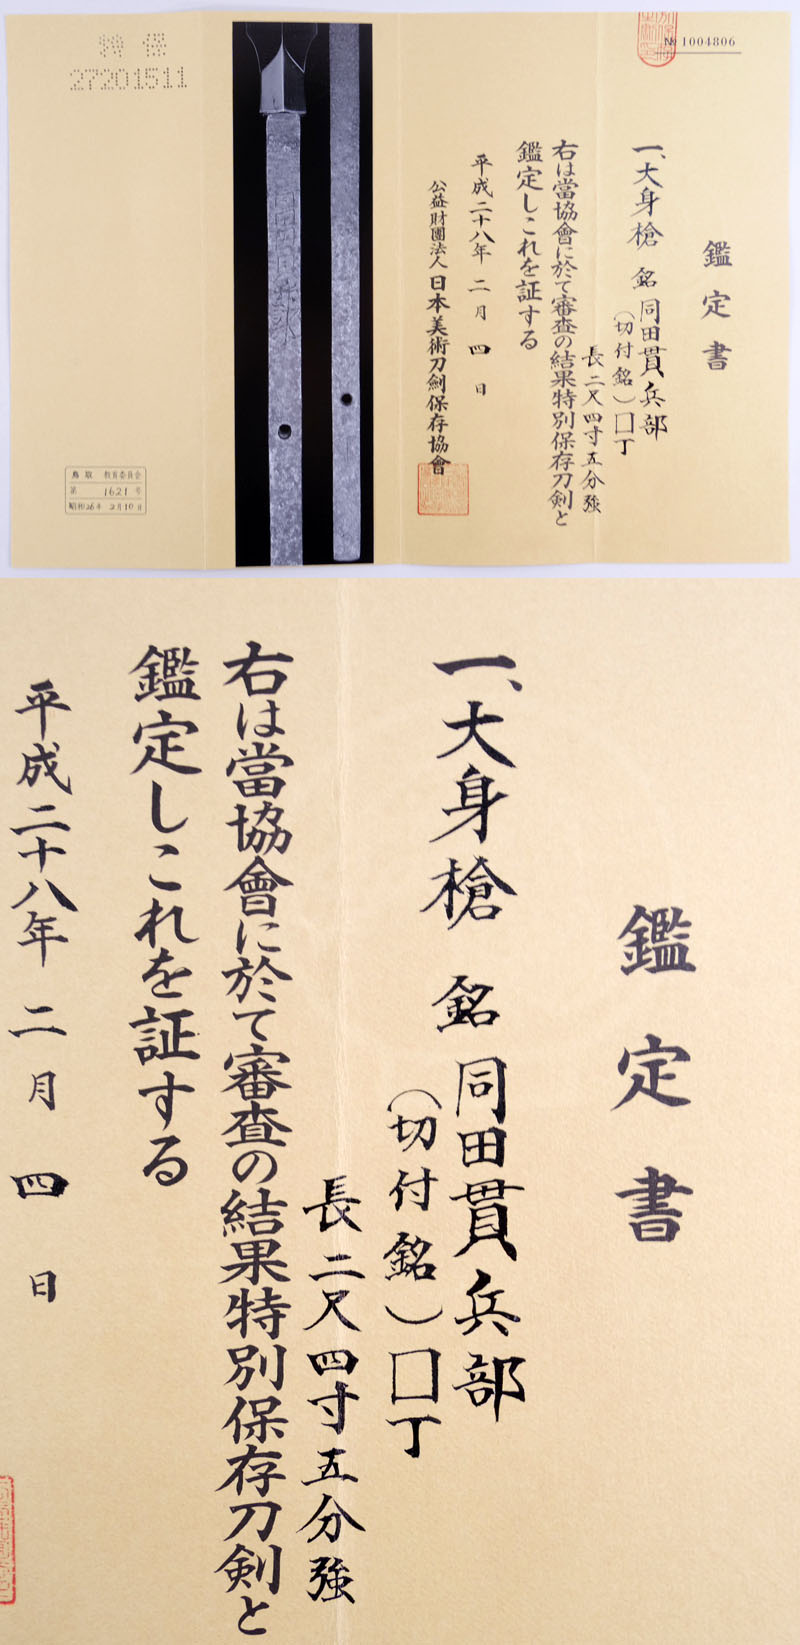 同田貫兵部 Picture of Certificate